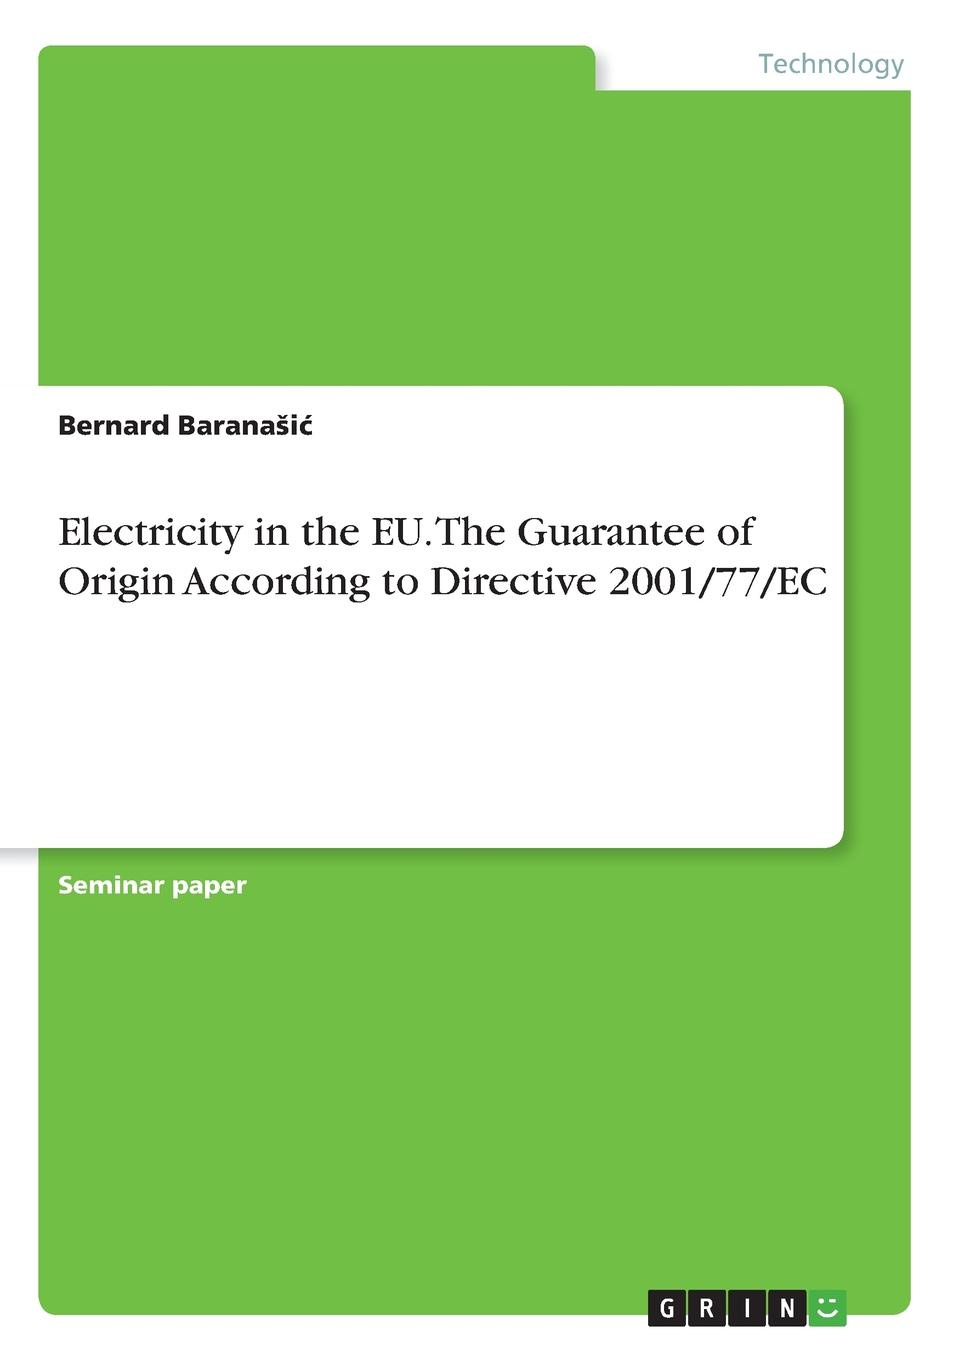 Bernard Baranašić Electricity in the EU. The Guarantee of Origin According to Directive 2001/77/EC robert norman bland historical tombstones of malacca mostly of portuguese origin with the inscriptions in detail and illustrated by numerous photographs